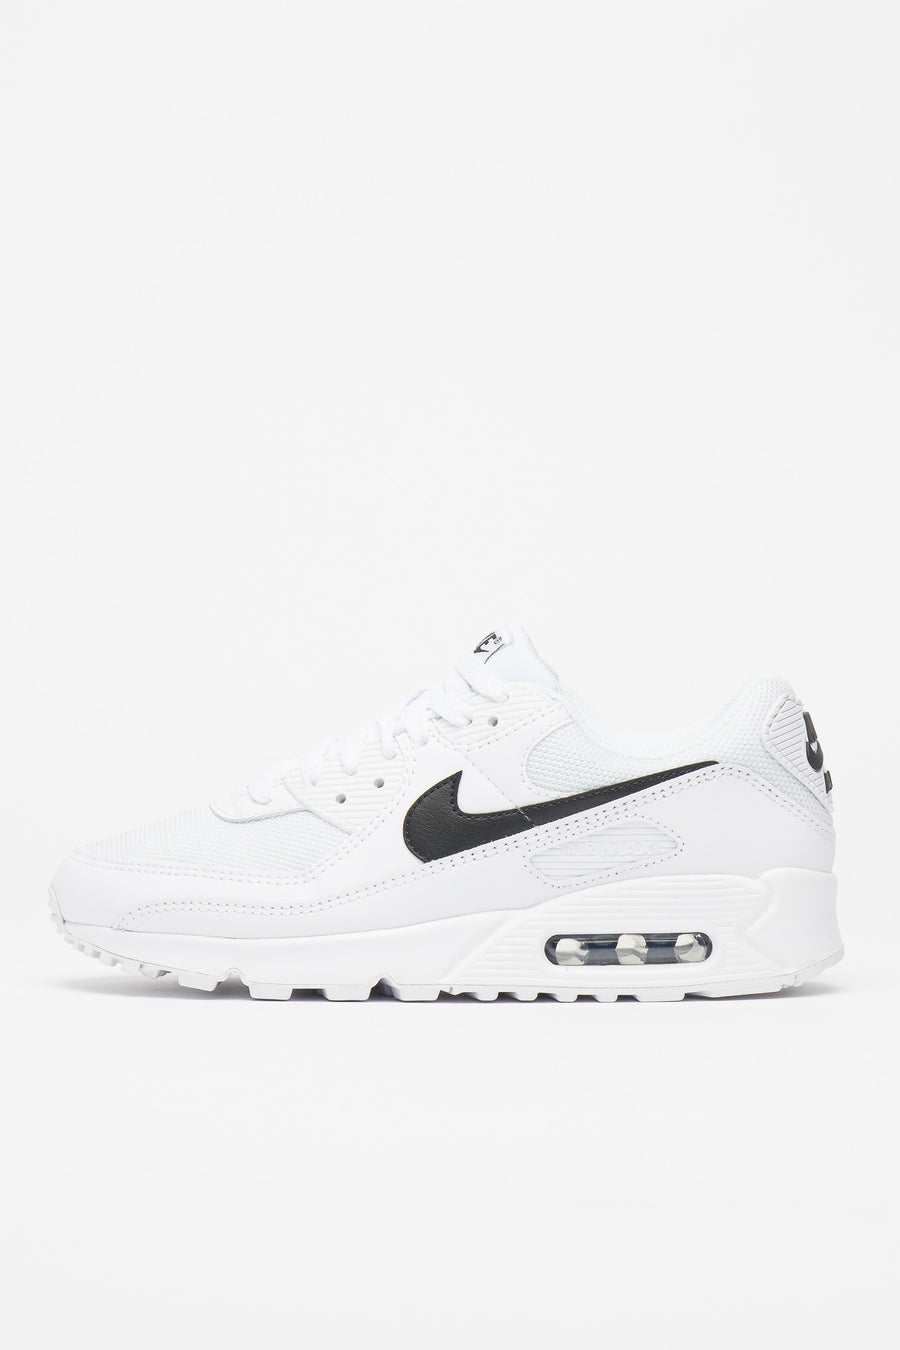 W Air Max 90 In White Black